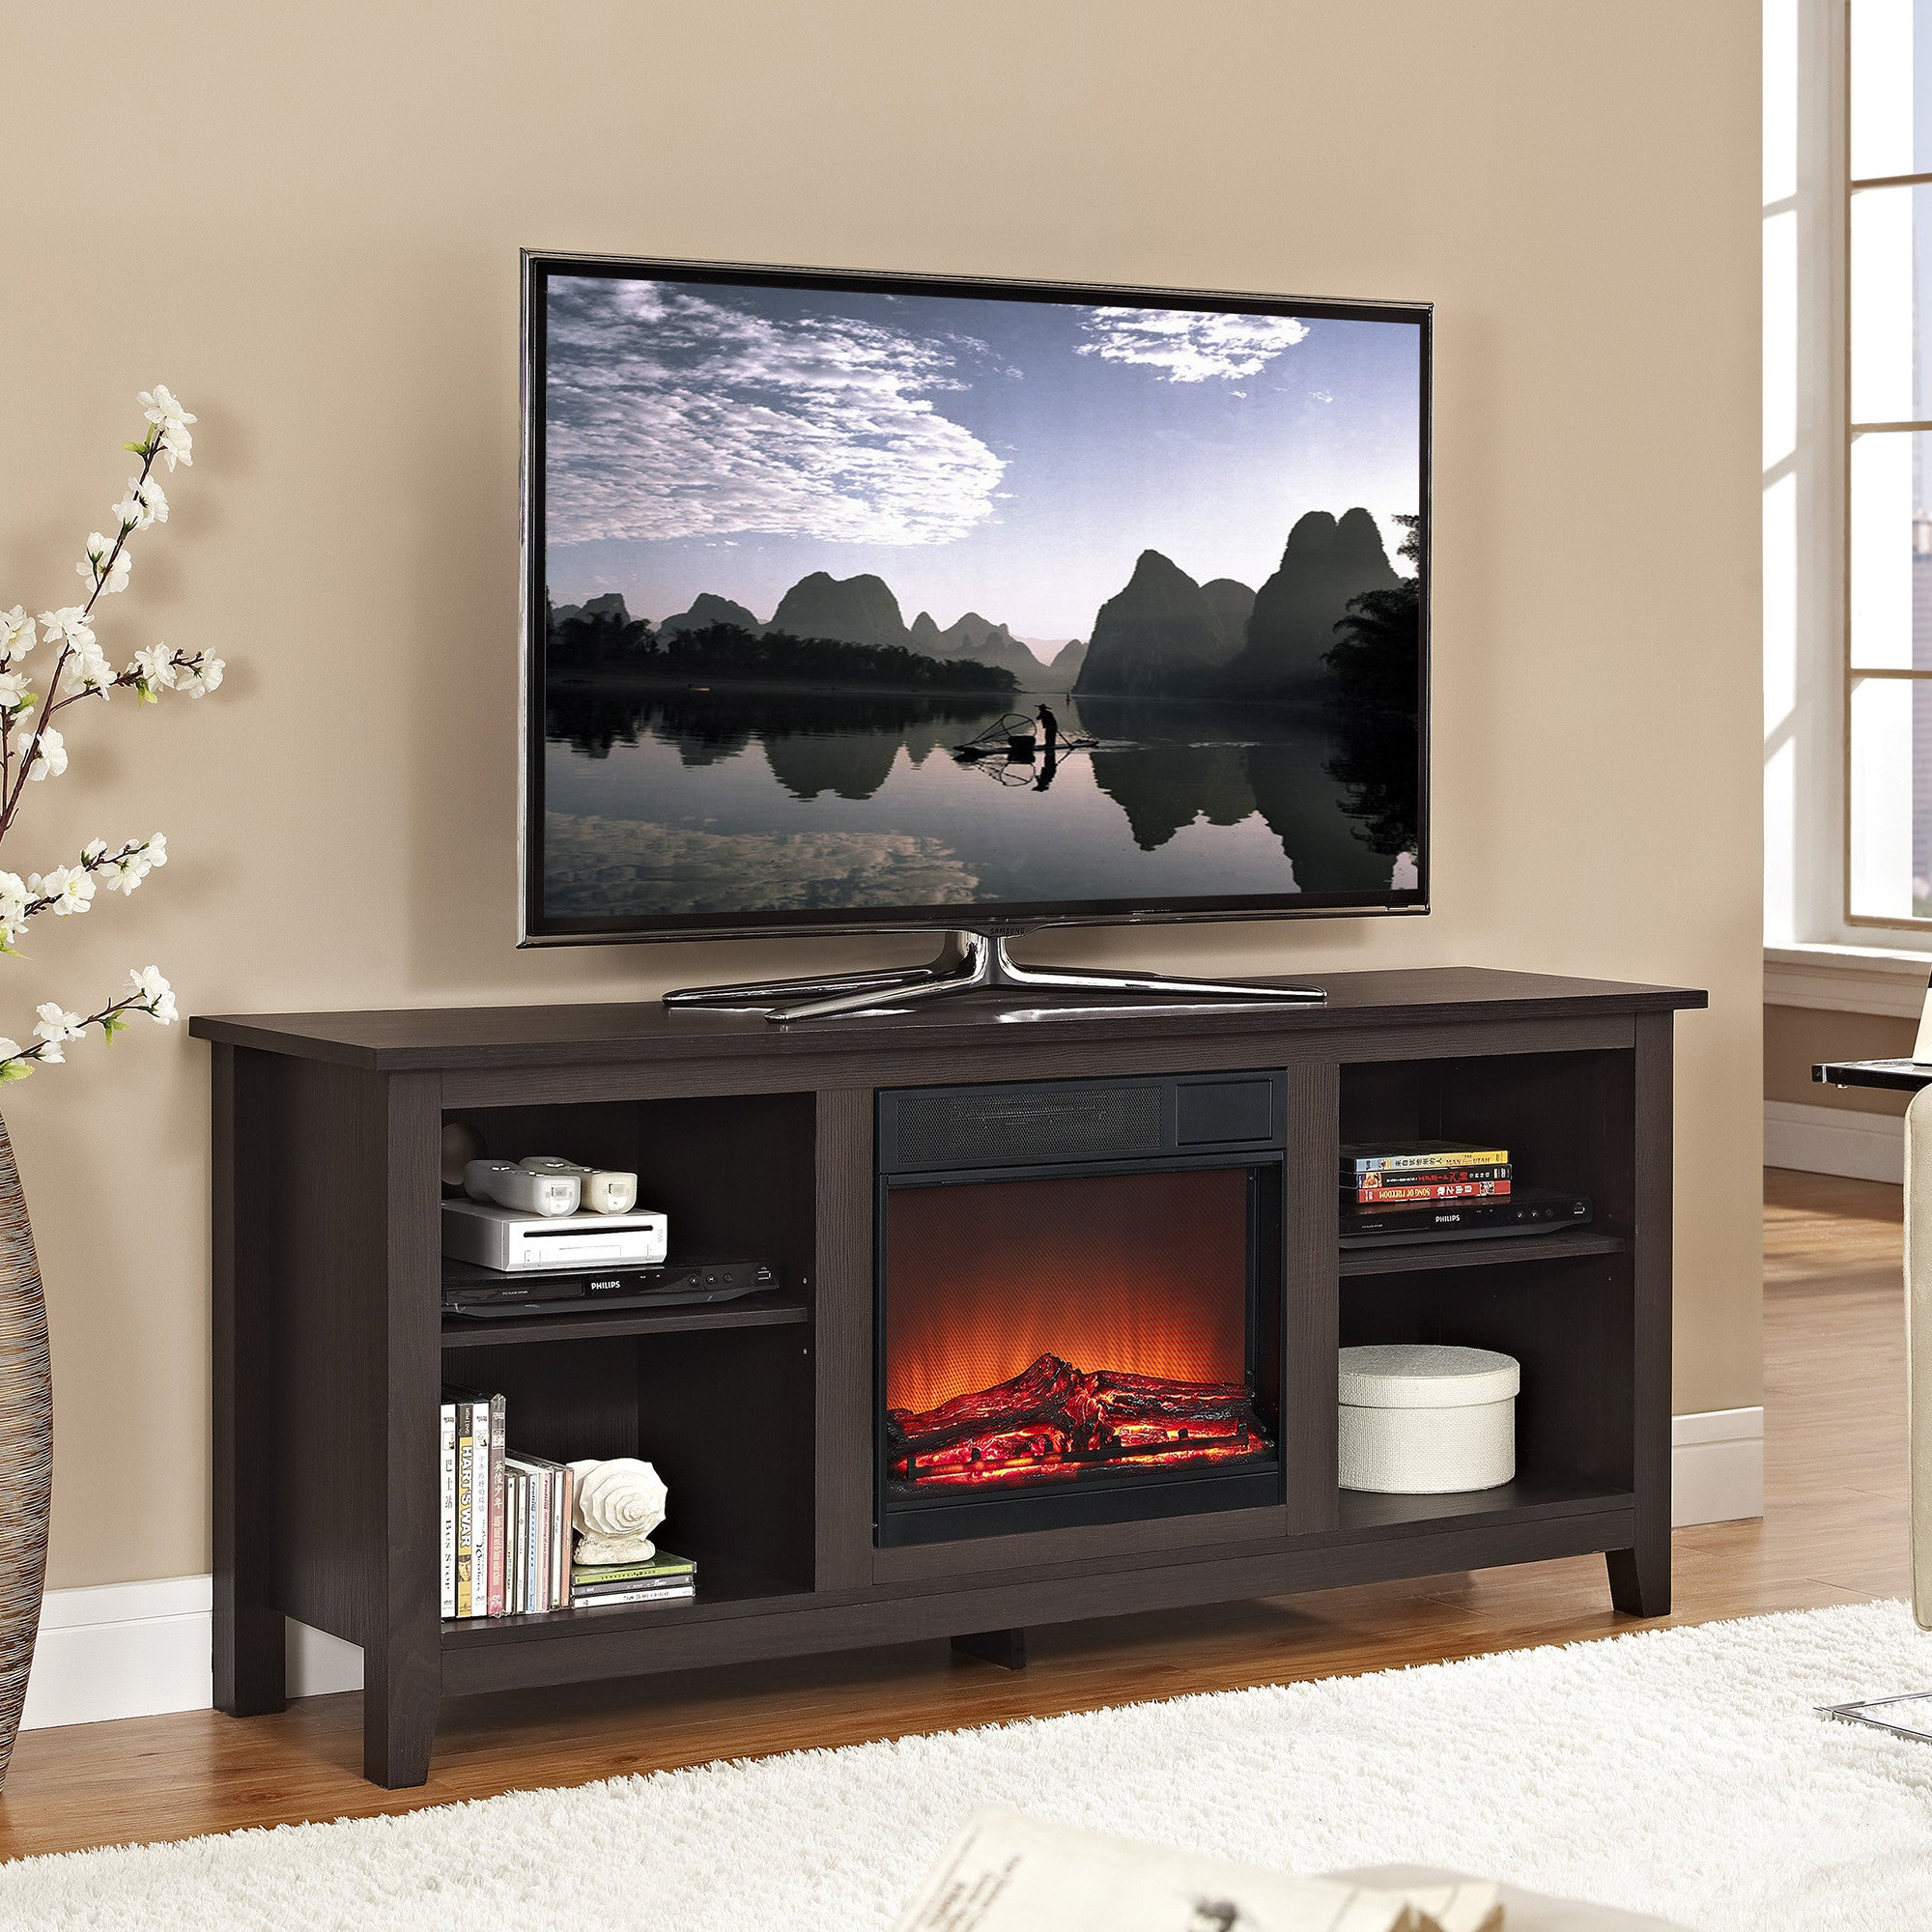 most space electric media stand cheap effectively tv corner console fireplace use living